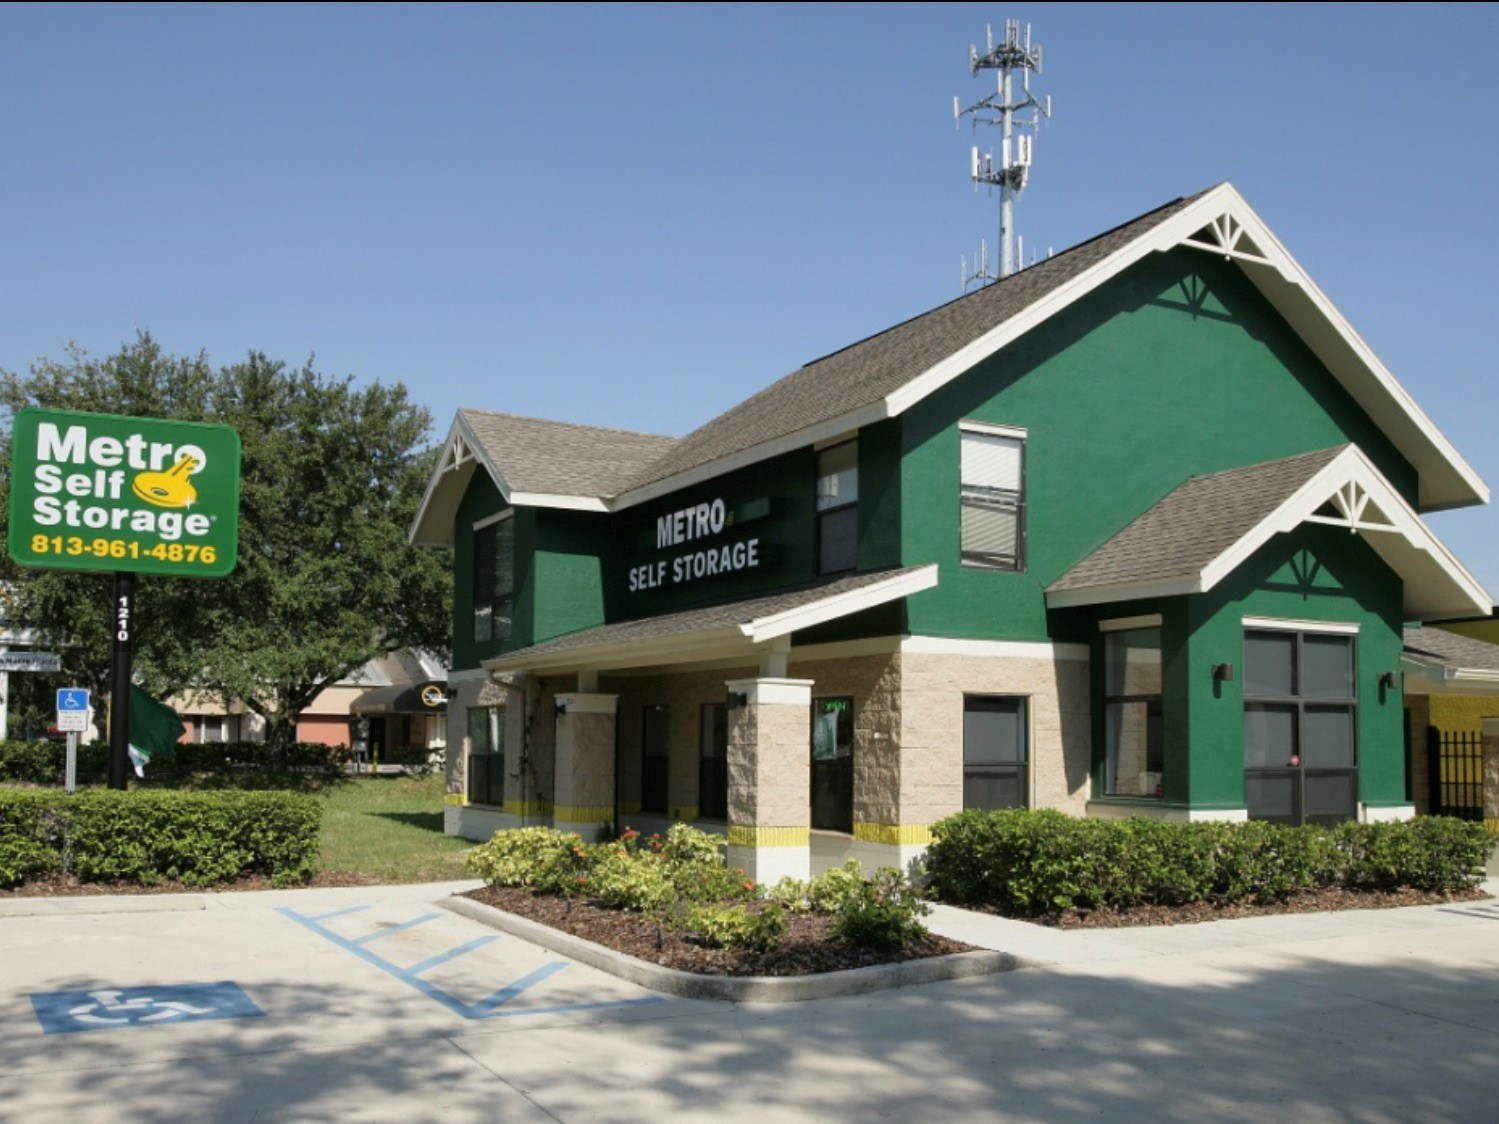 One of Metro's self storage properties in Tampa, Fla. Image courtesy of Talonvest Capital Inc.